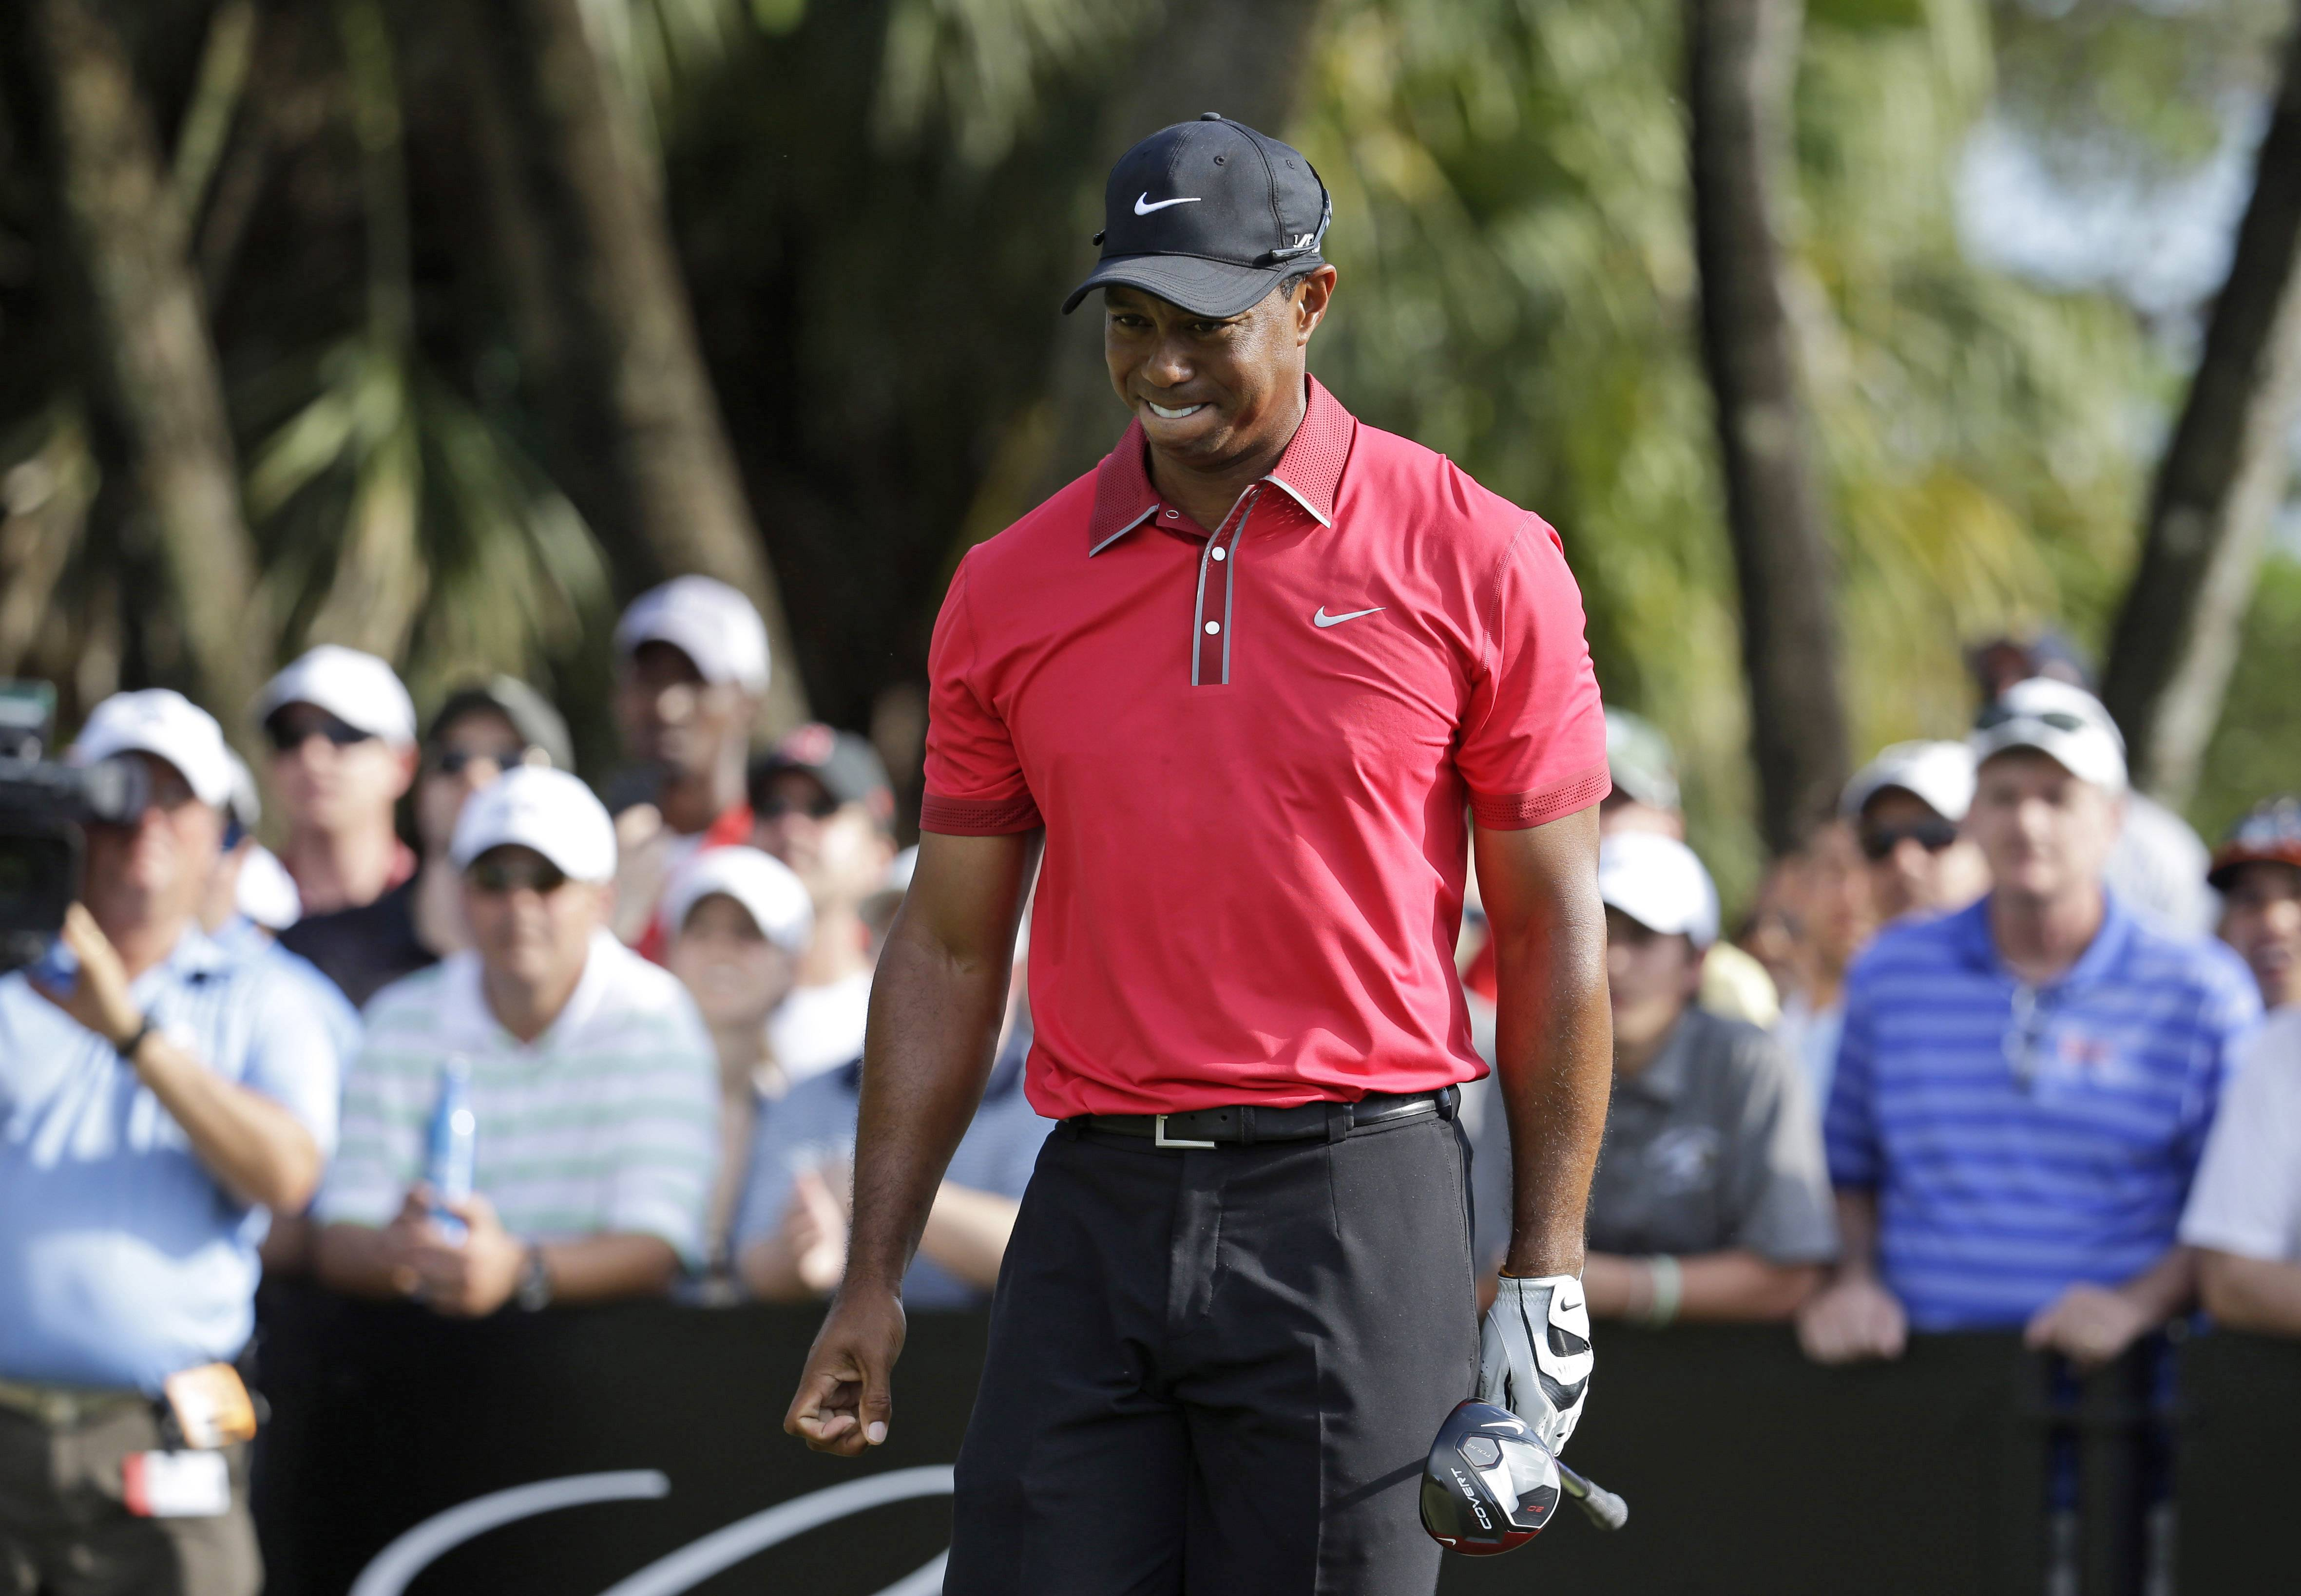 Associated PressIn this March 9, 2014 file photo, Tiger Woods grimaces after teeing off on the 12th hole during the final round of the Cadillac Championship golf tournament in Doral, Fla. Woods will miss the Masters for the first time in his career after having surgery on his back.